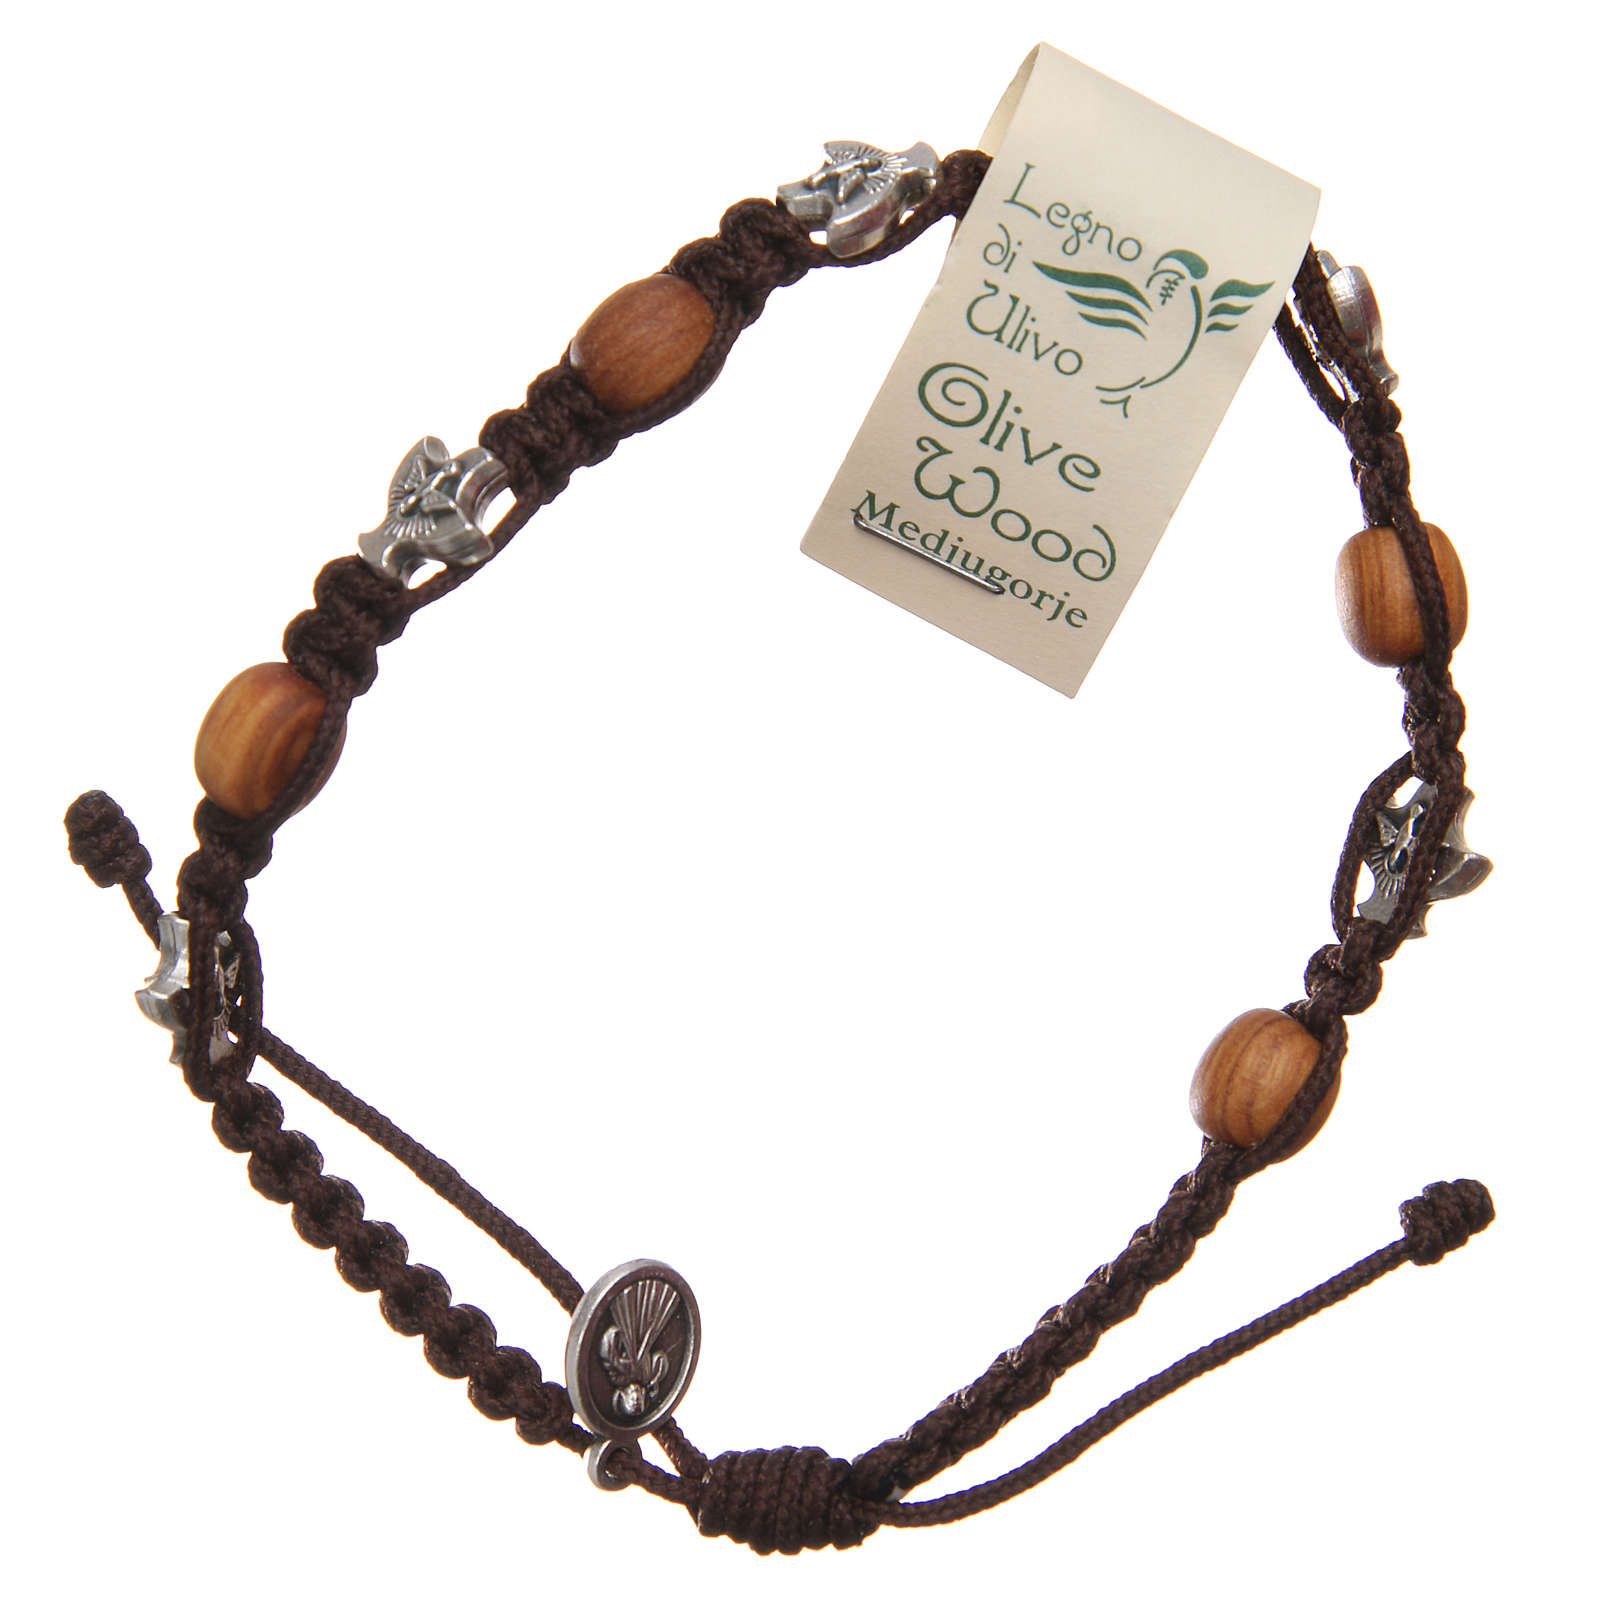 Bracelet Medjugorje brown rope and olive wood 4